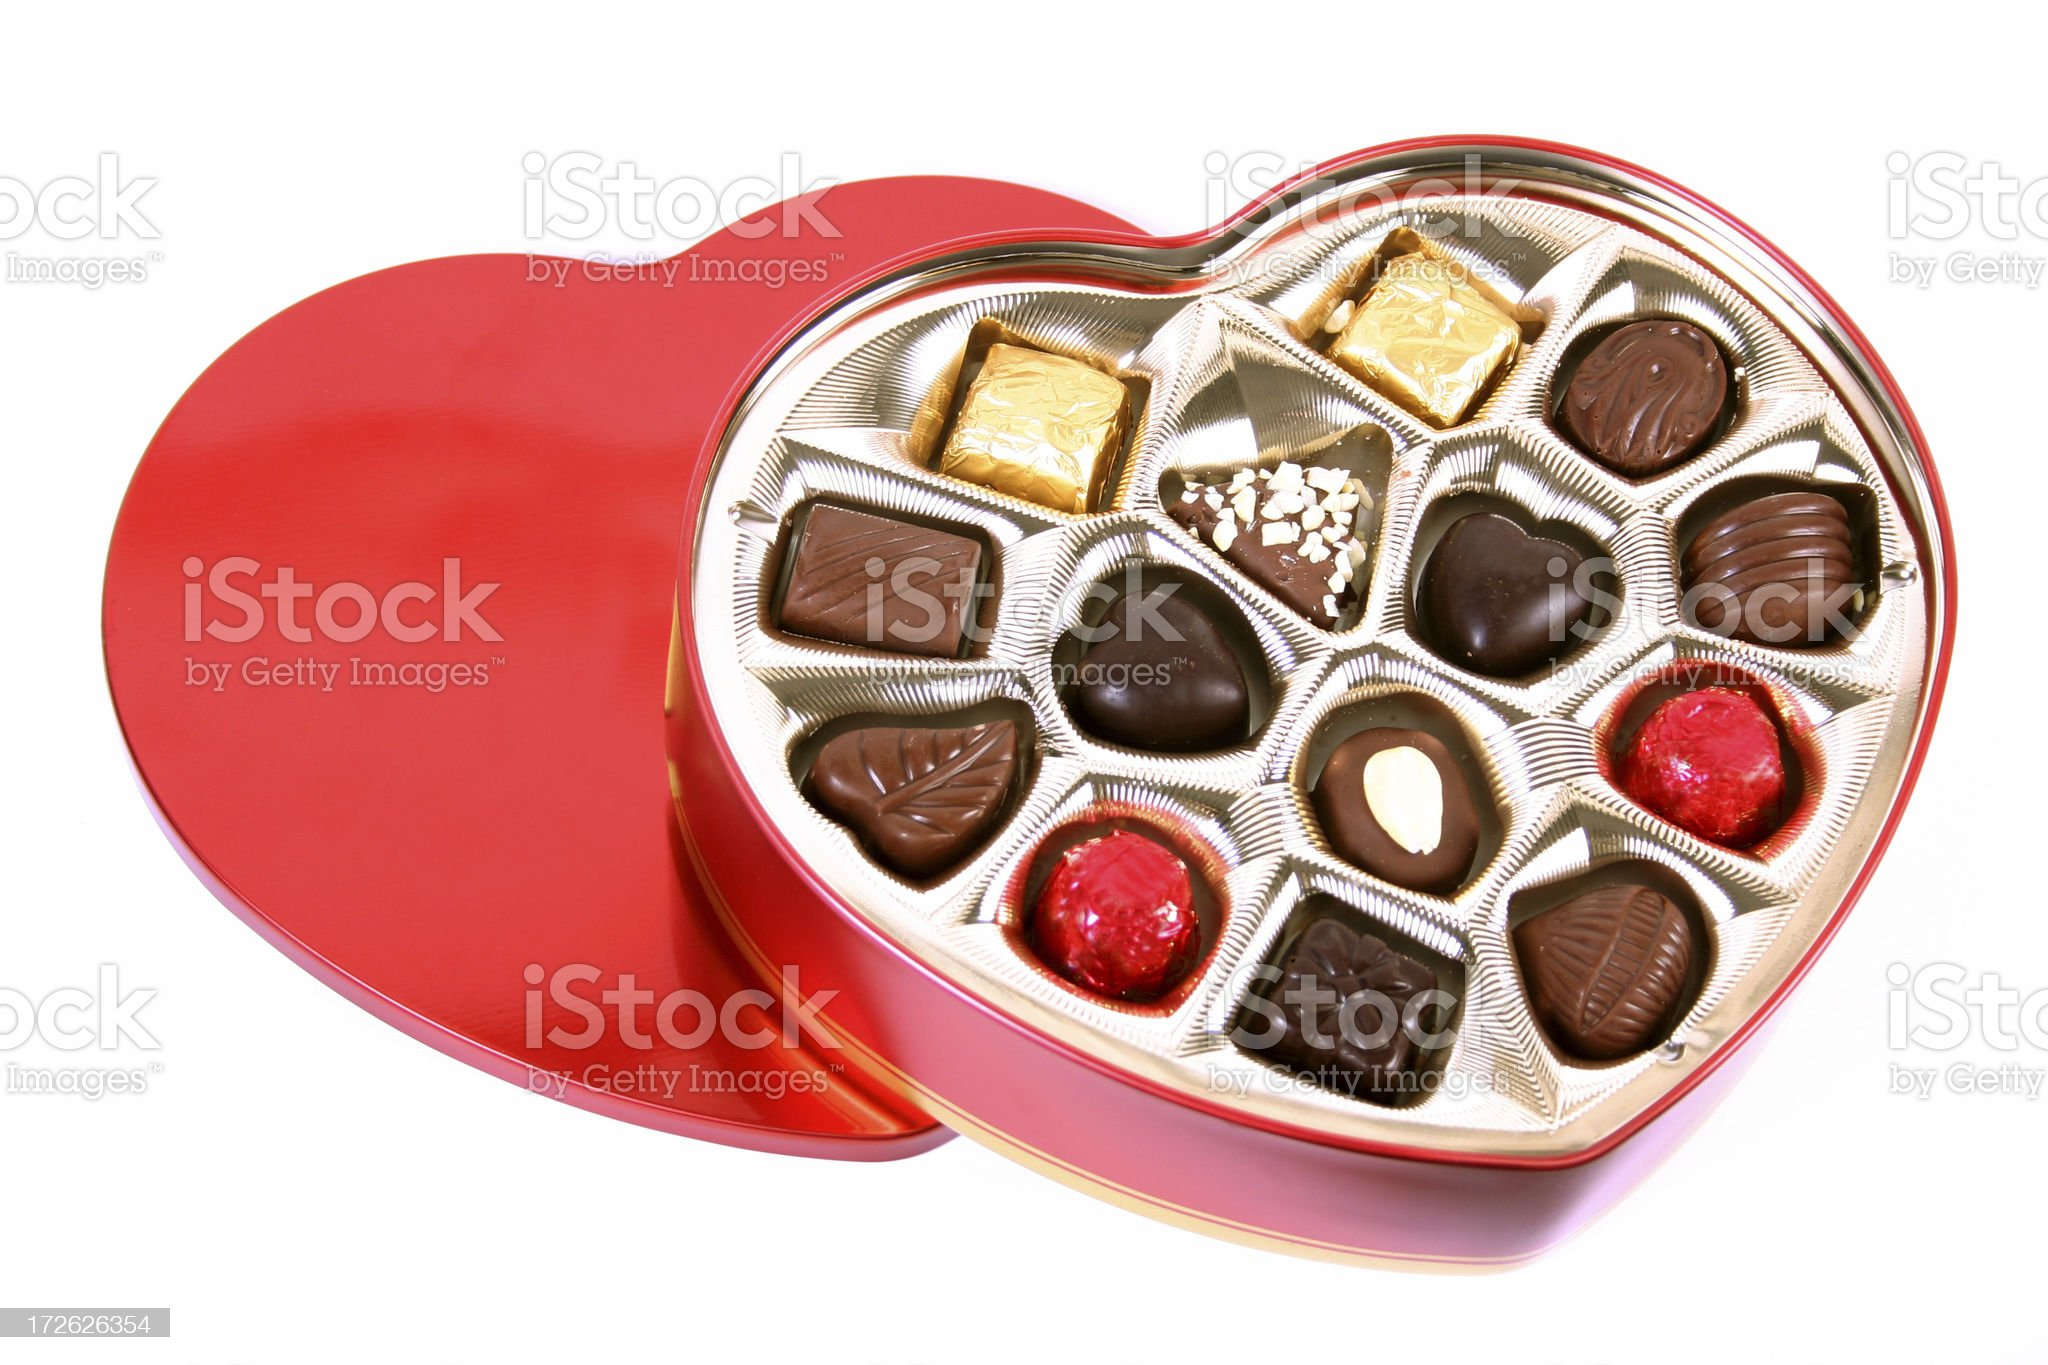 Chocolate Heart royalty-free stock photo